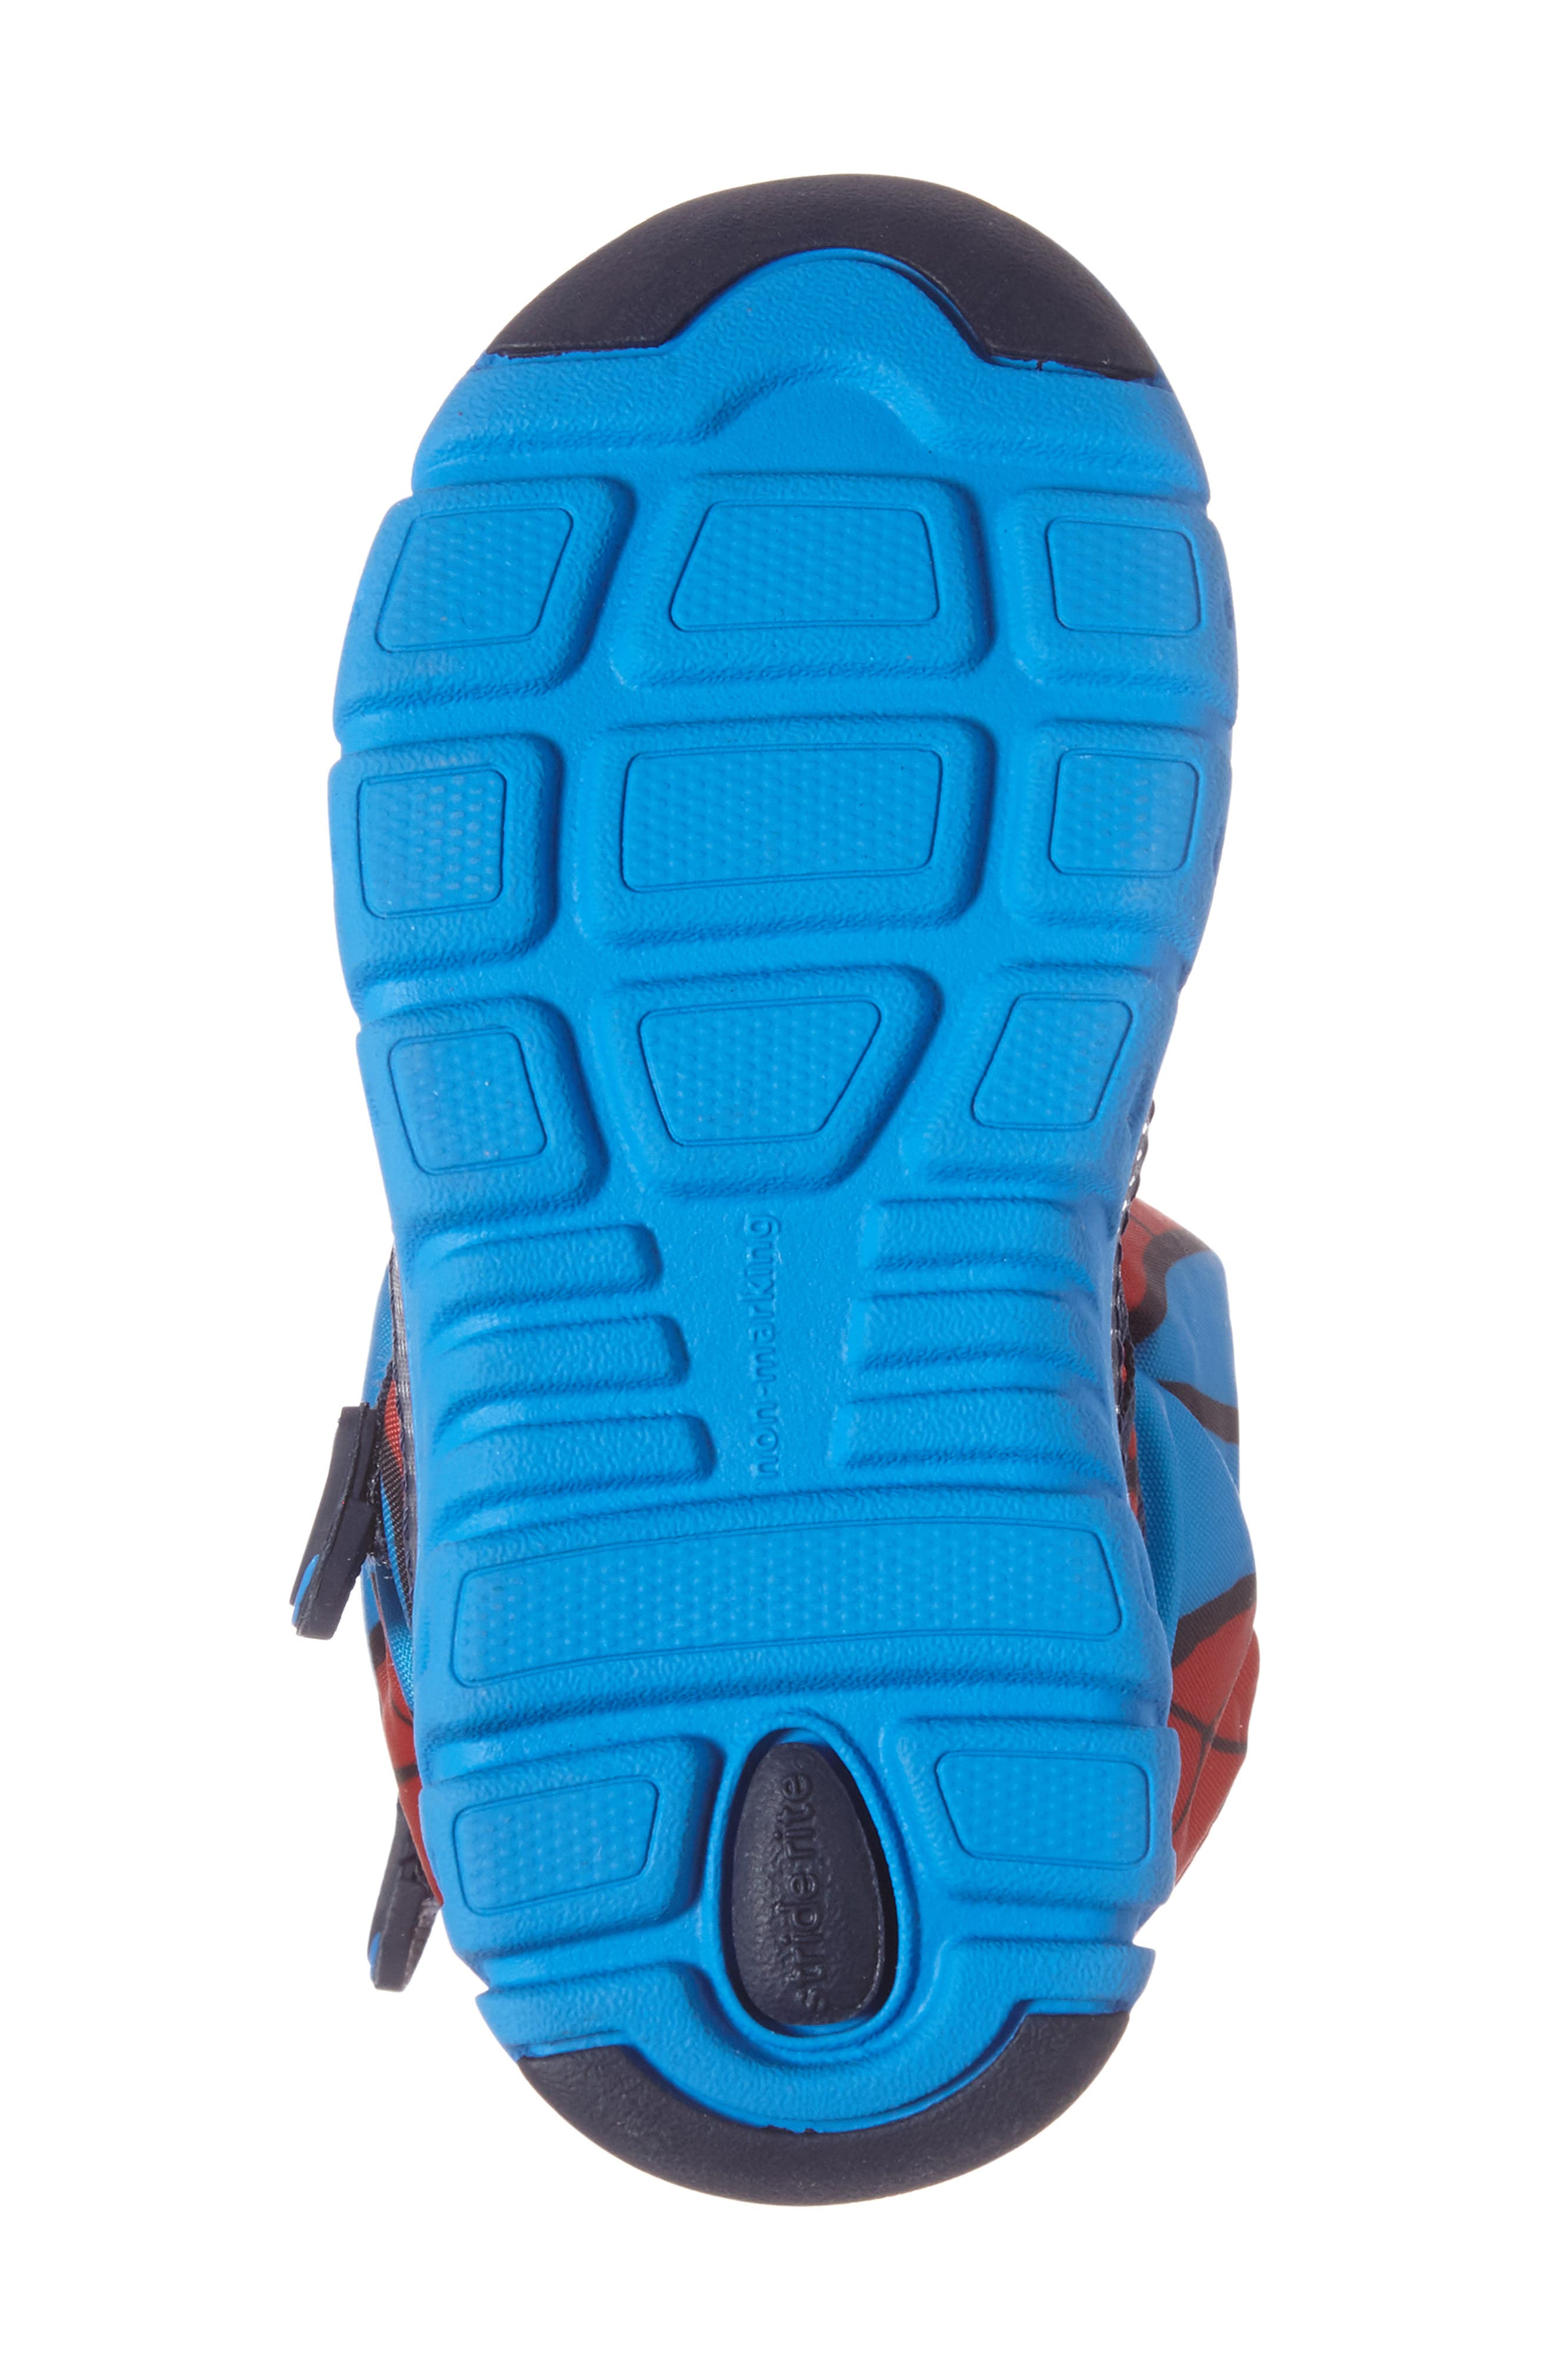 Made2Play<sup>®</sup> Spiderman Water Resistant Boot,                             Alternate thumbnail 4, color,                             600